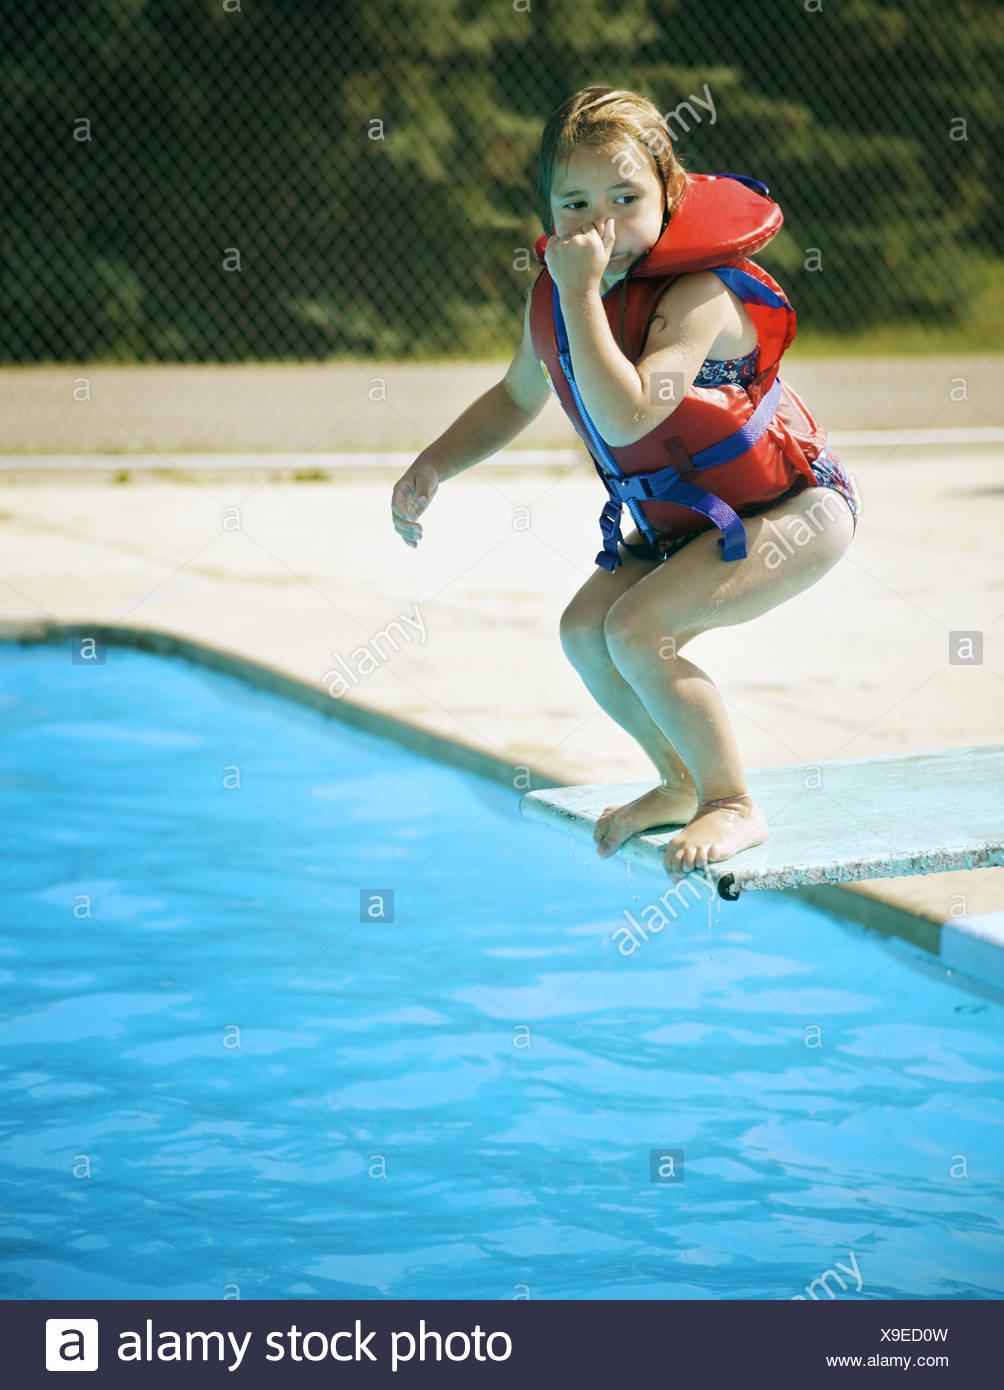 People Jumping Off Diving Board Stock Photos Amp People